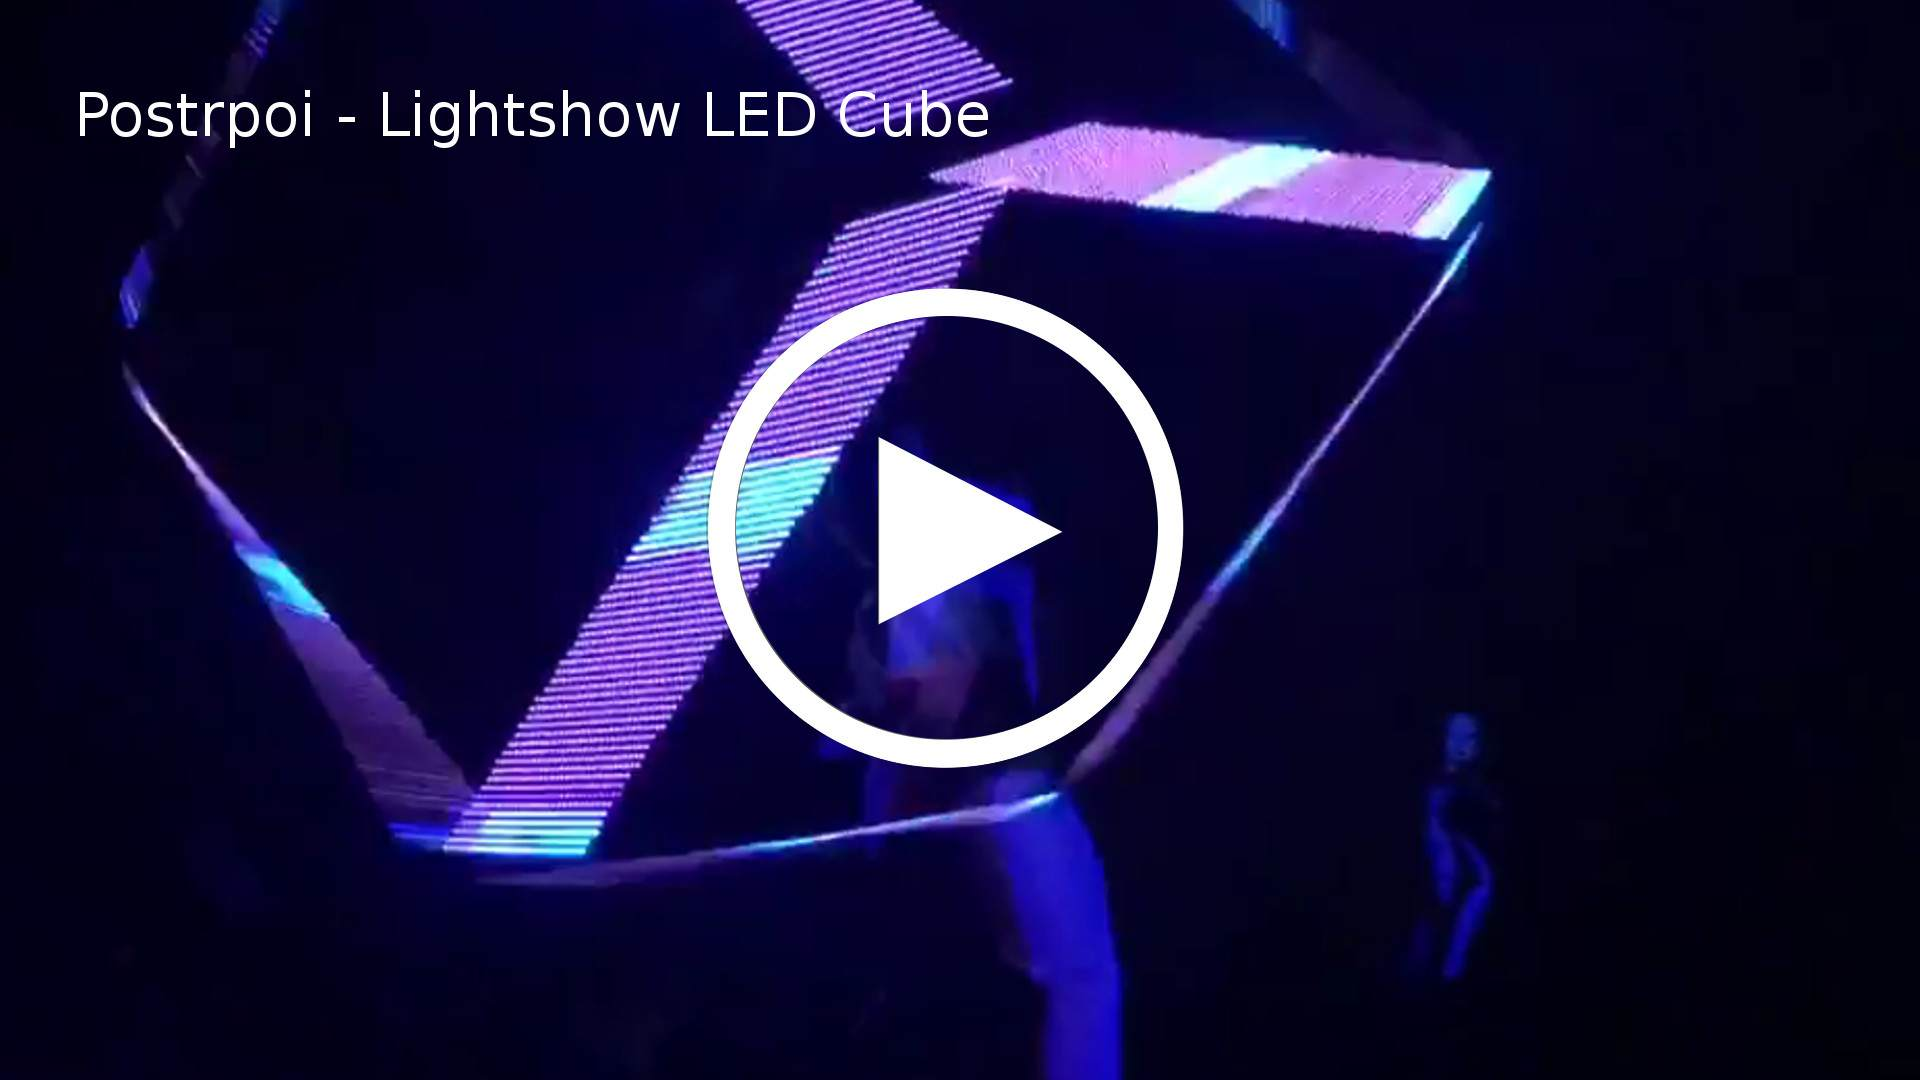 Postrpoi - Lightshow LED Cube